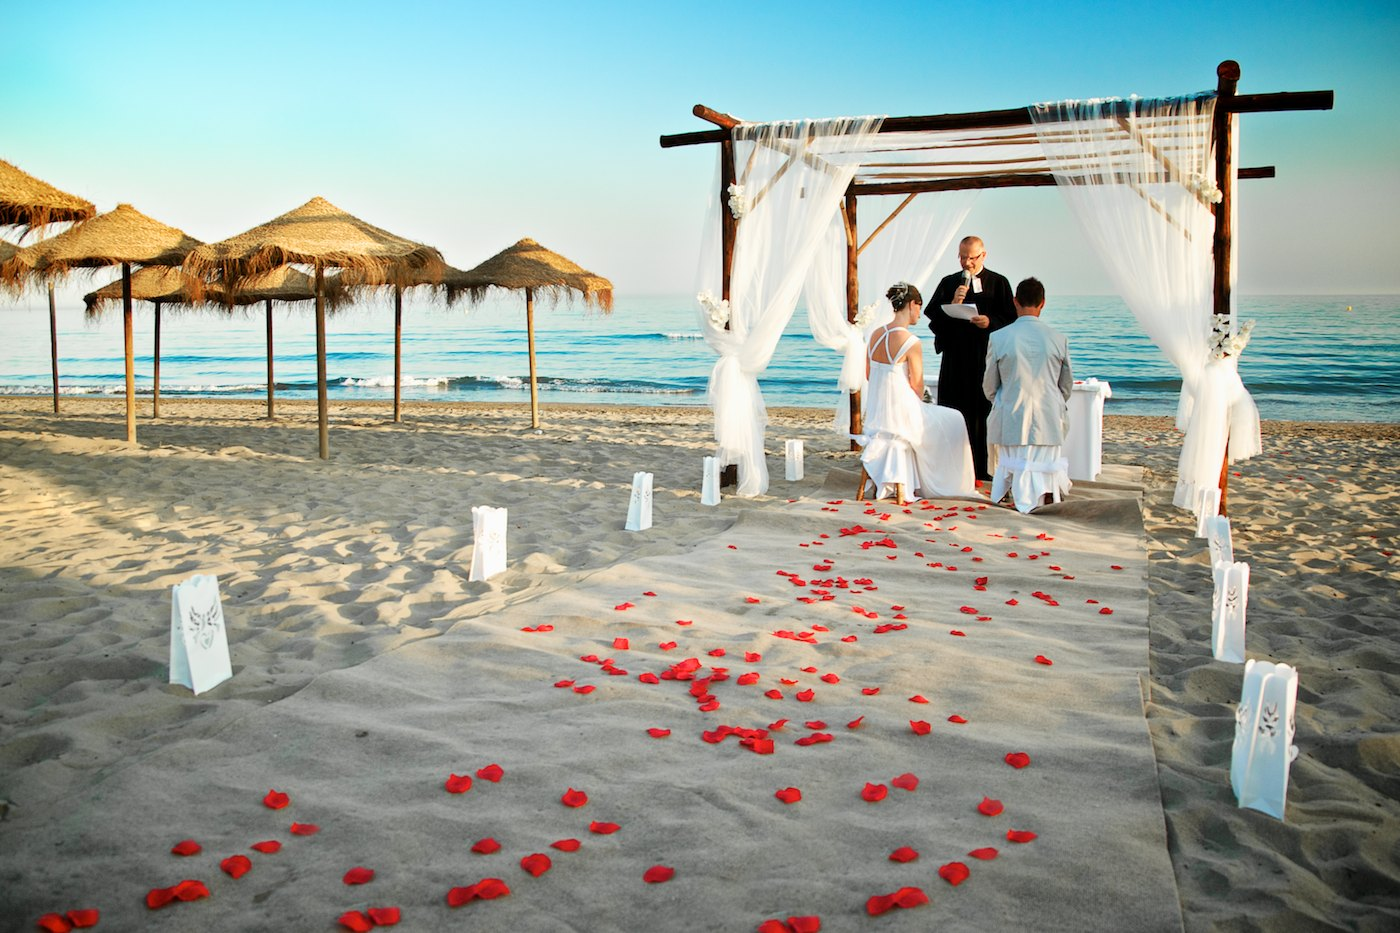 Wedding Destinations